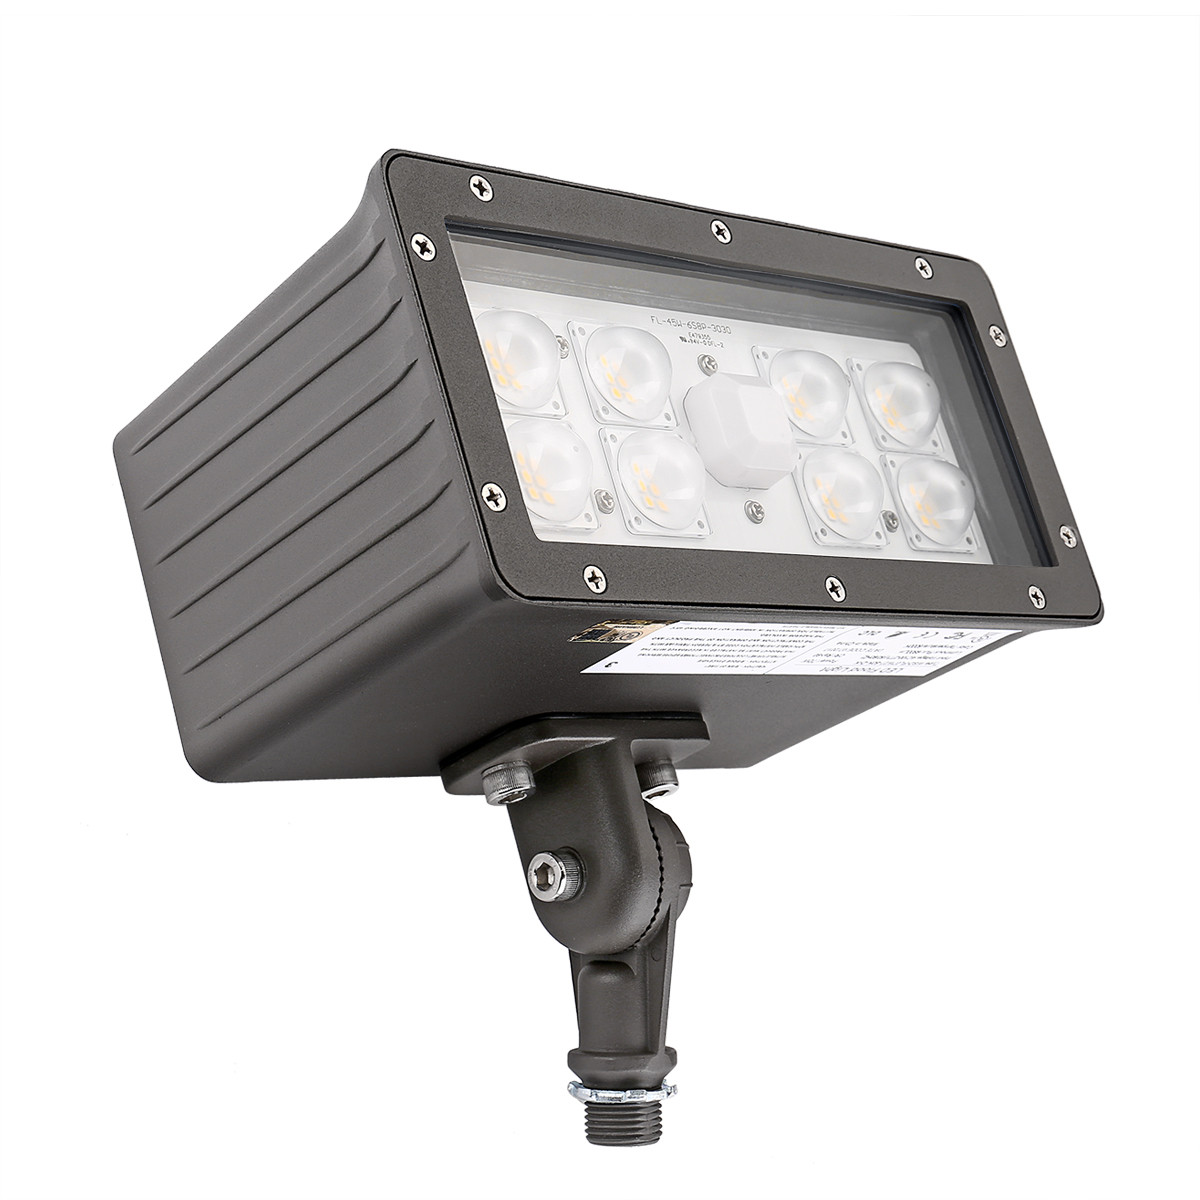 Best ideas about Led Outdoor Flood Lights . Save or Pin 45W mercial Outdoor LED Flood Lights Daylight White Now.